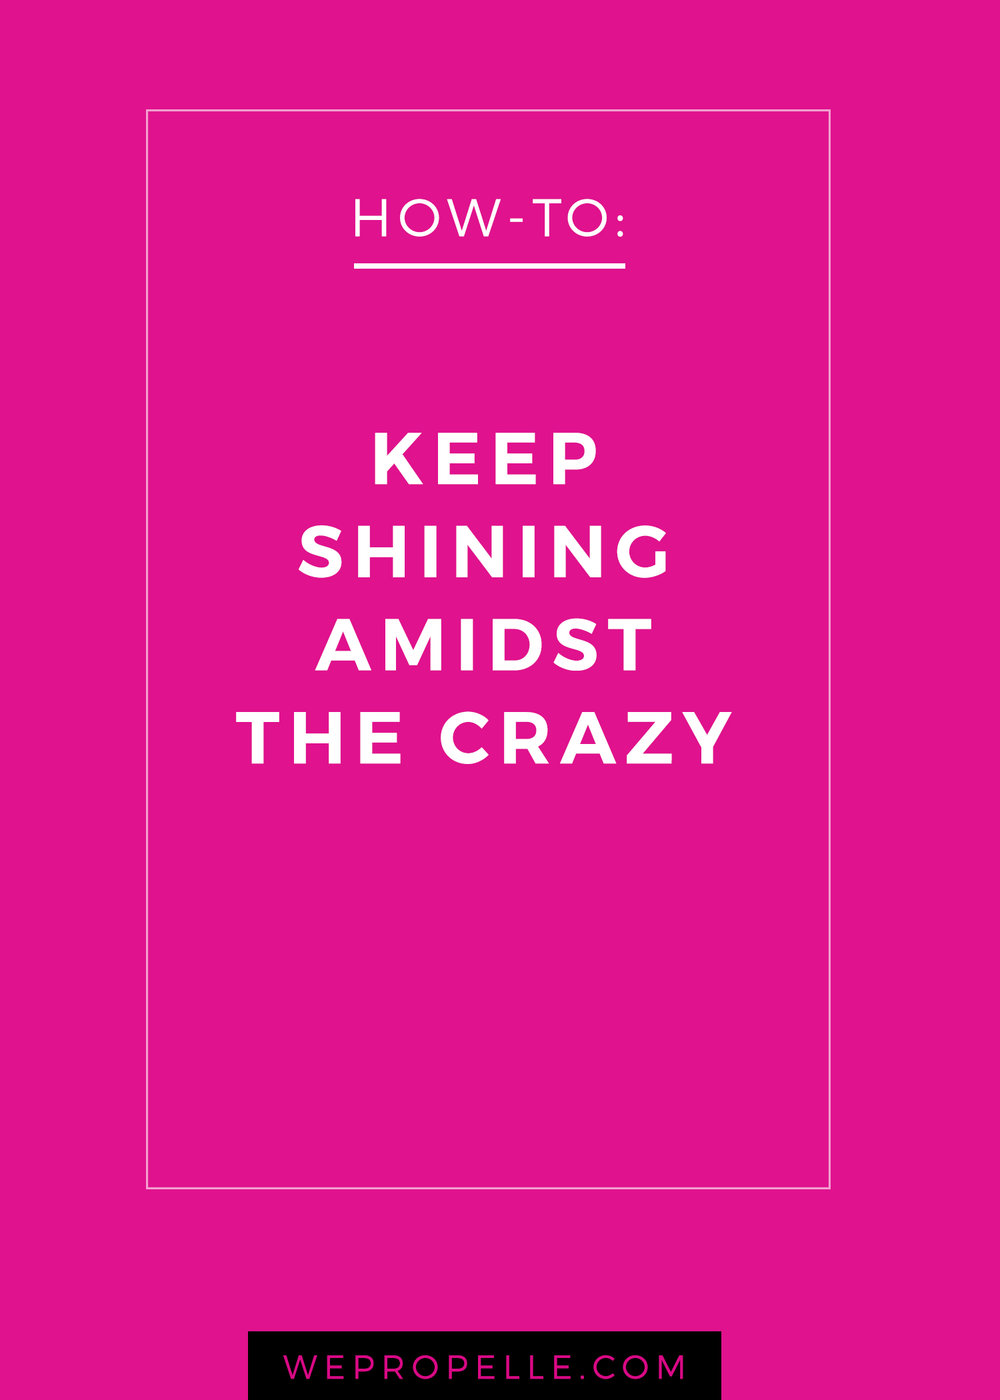 How to keep shining amidst the crazy. | wepropelle.com